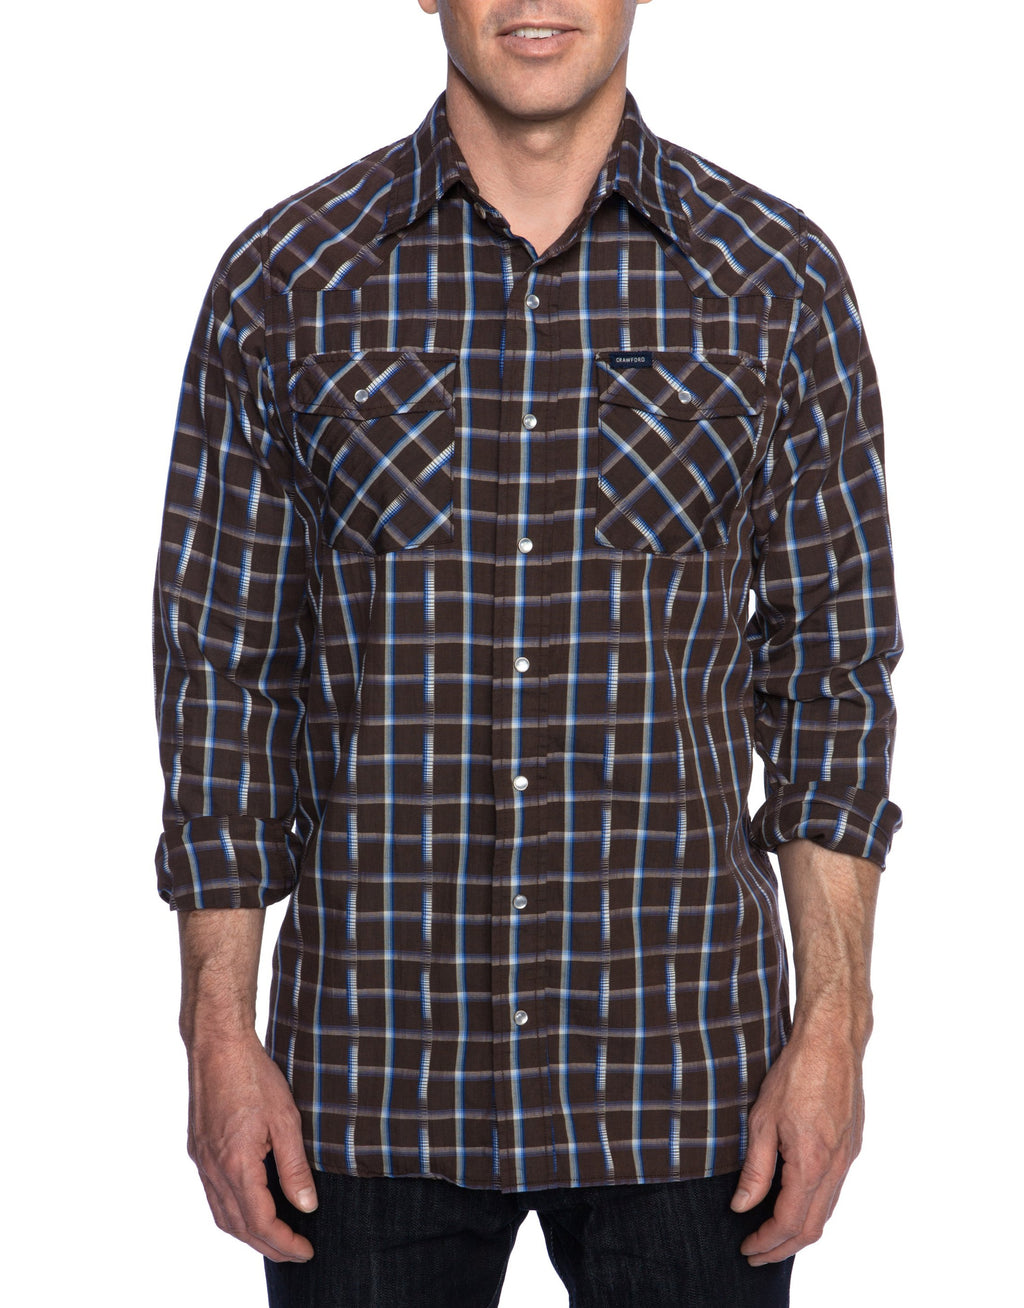 Crawford Denim Brown Plaid Western Shirt